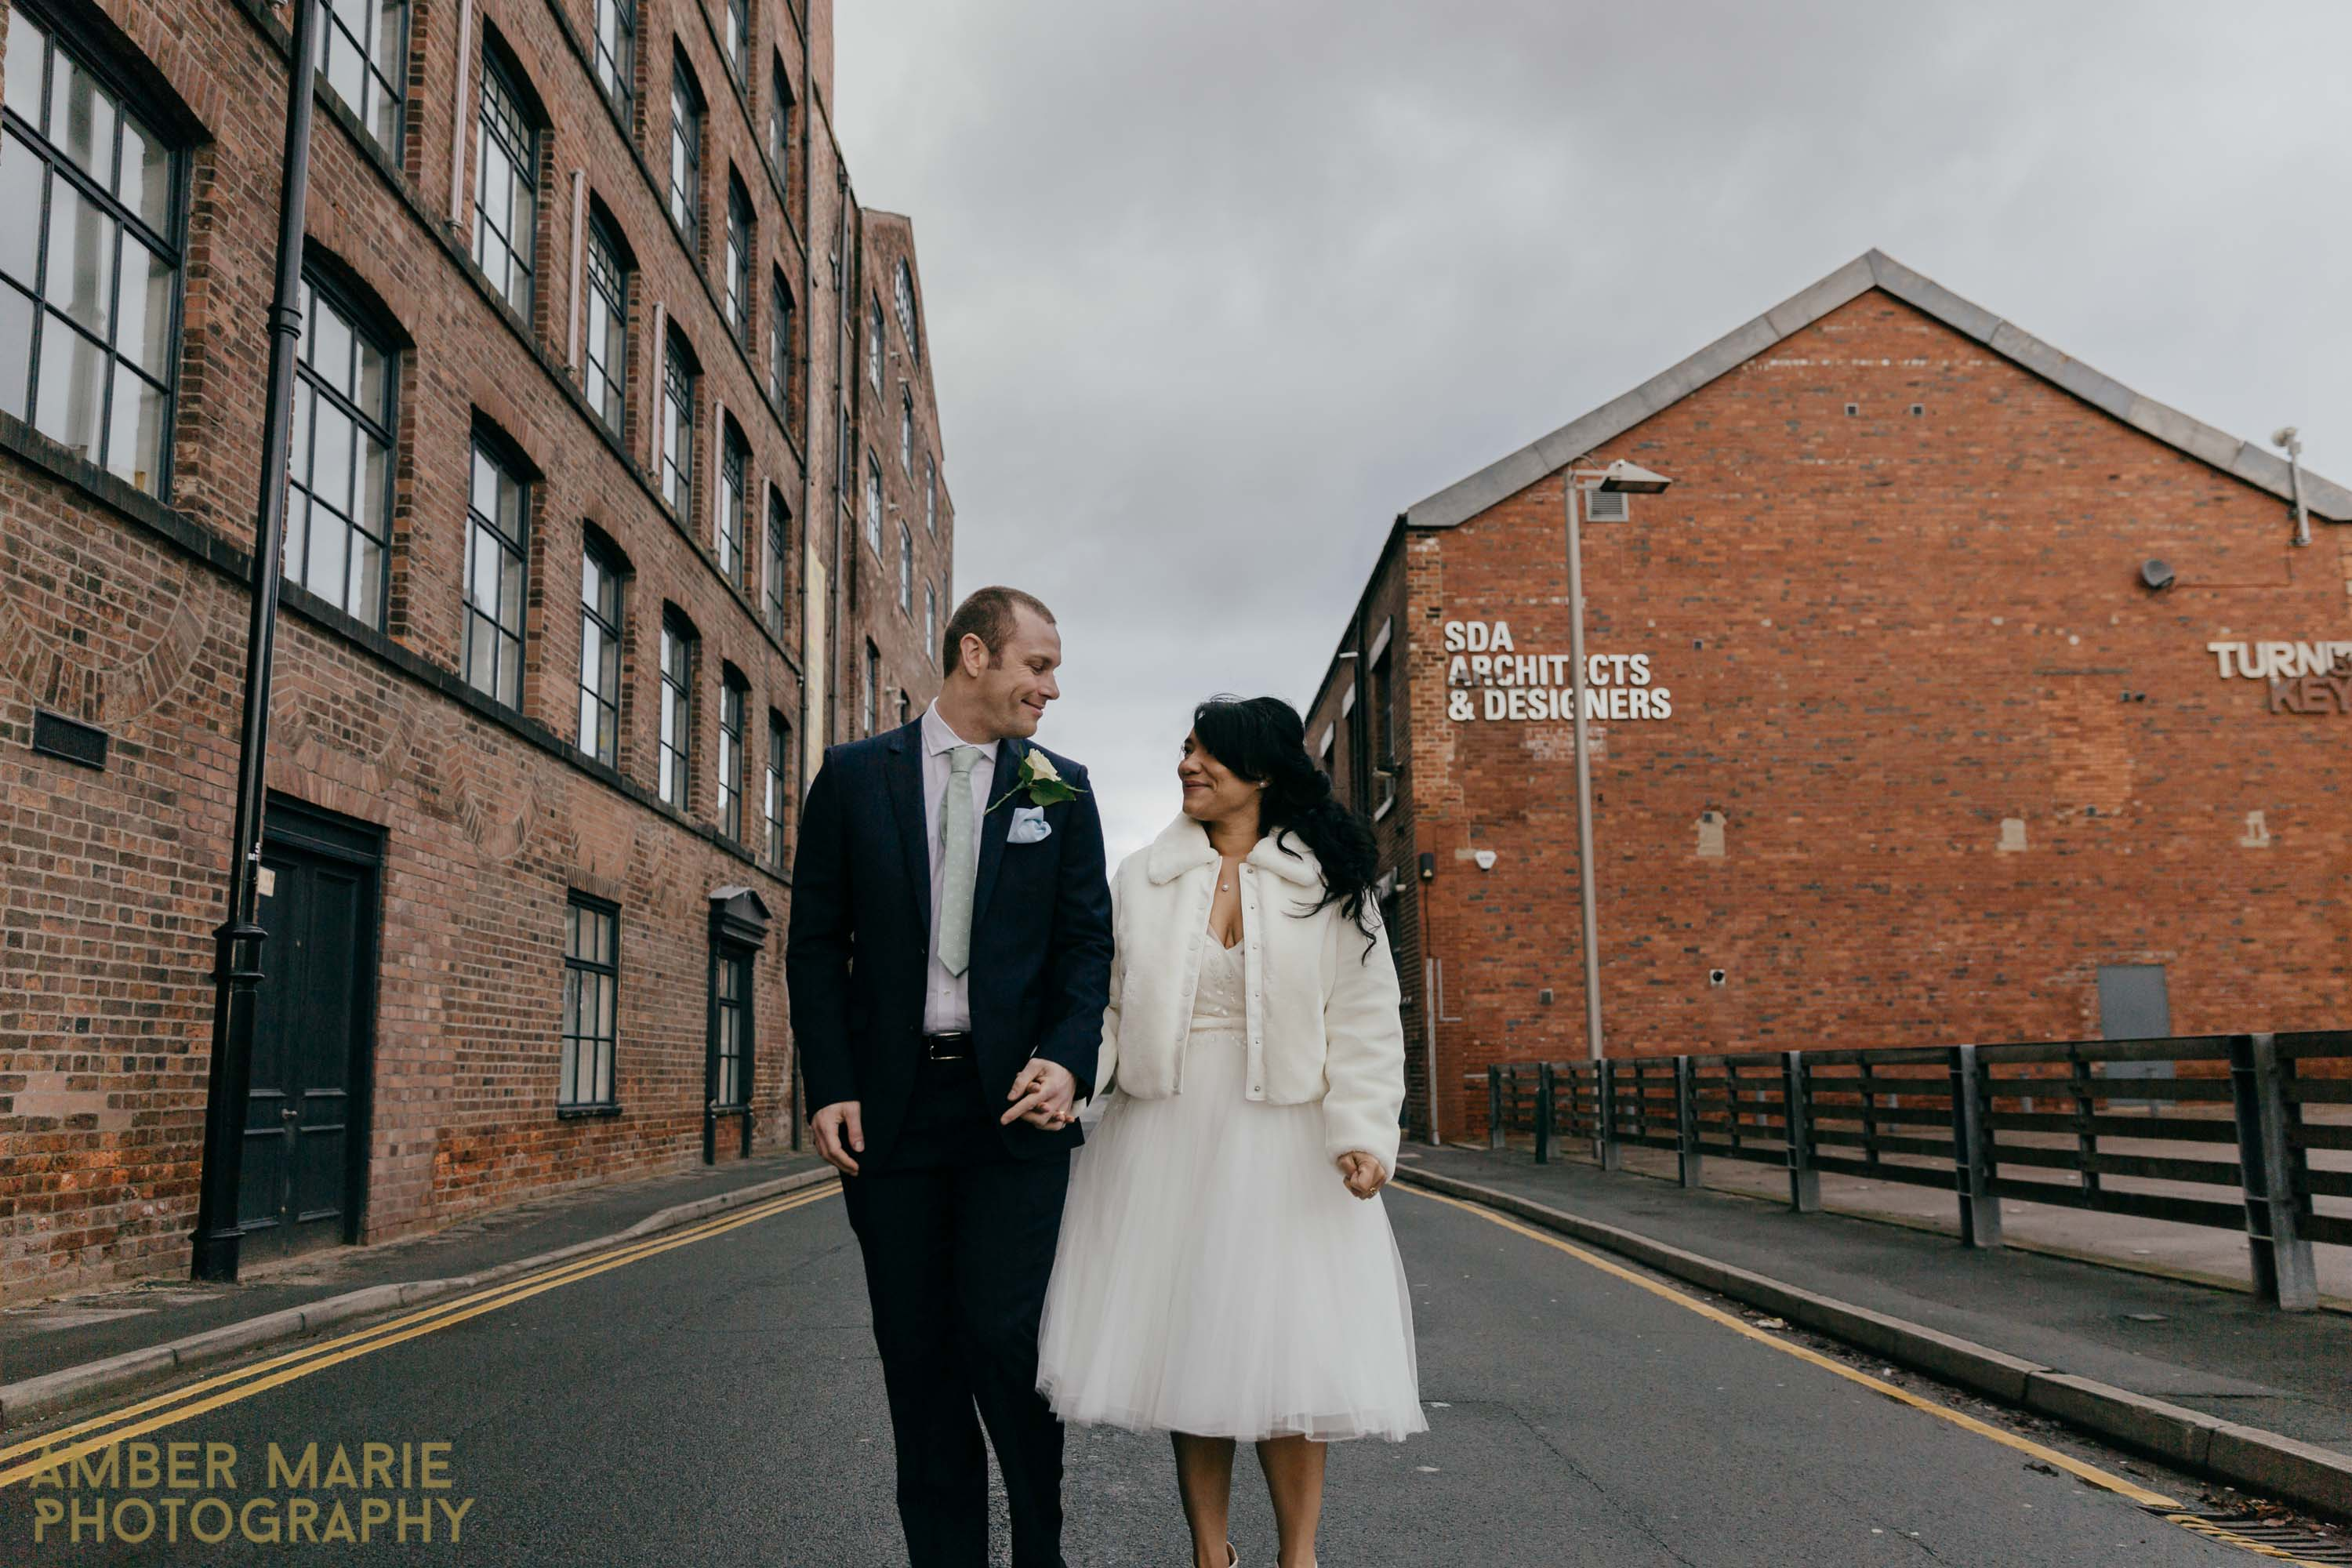 creative wedding photographers yorkshire leeds london cotwswolds